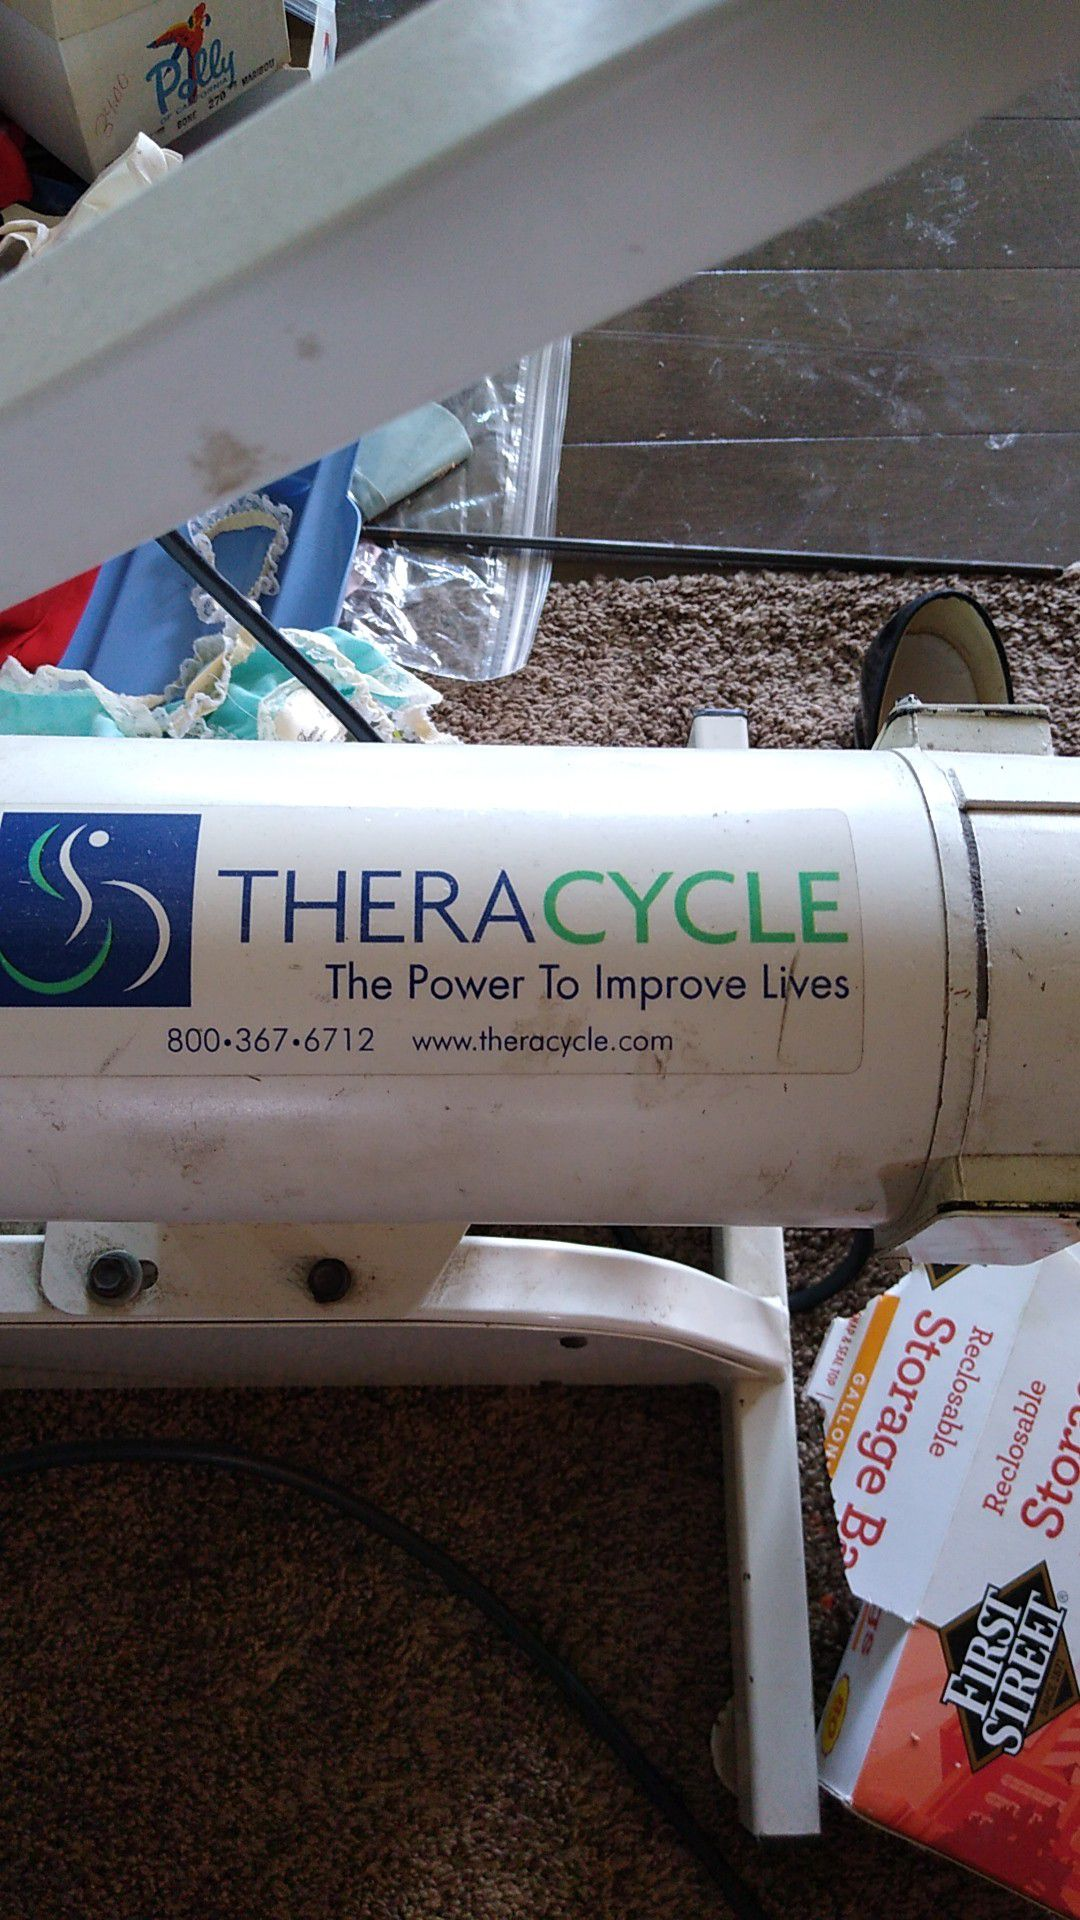 Theracycle